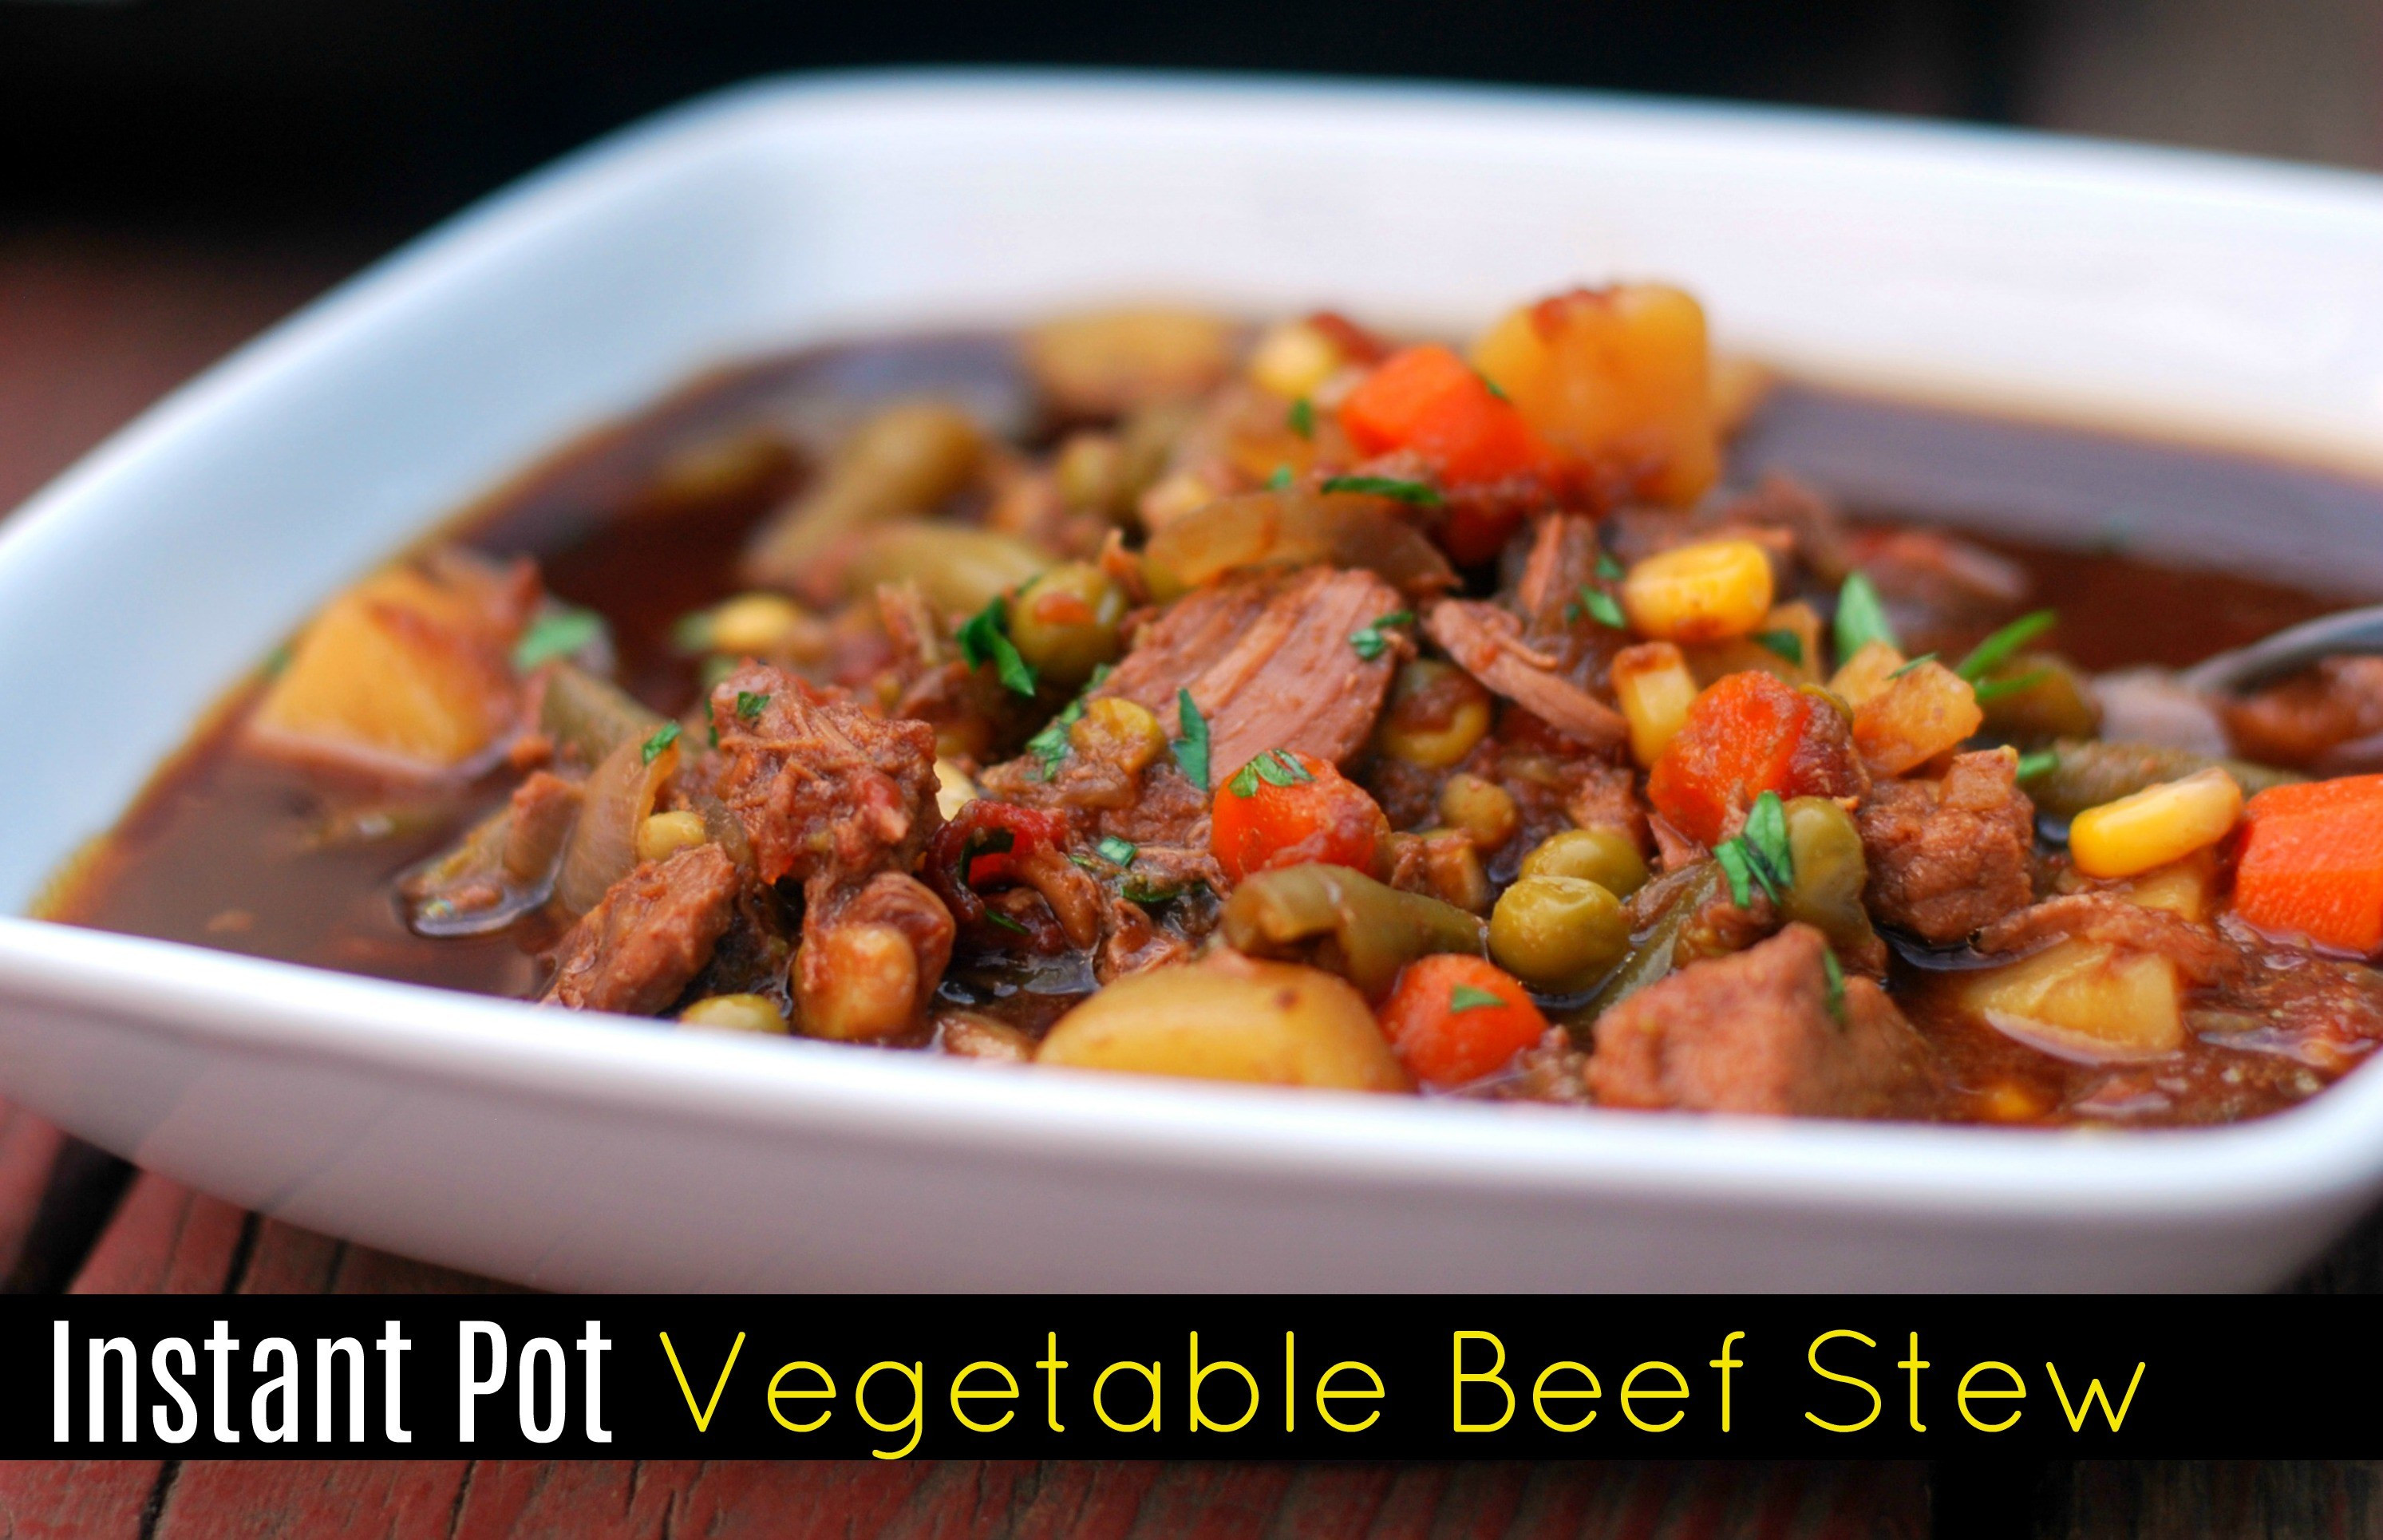 Instant Pot Beef Stew  Instant Pot Ve able Beef Stew Aunt Bee s Recipes